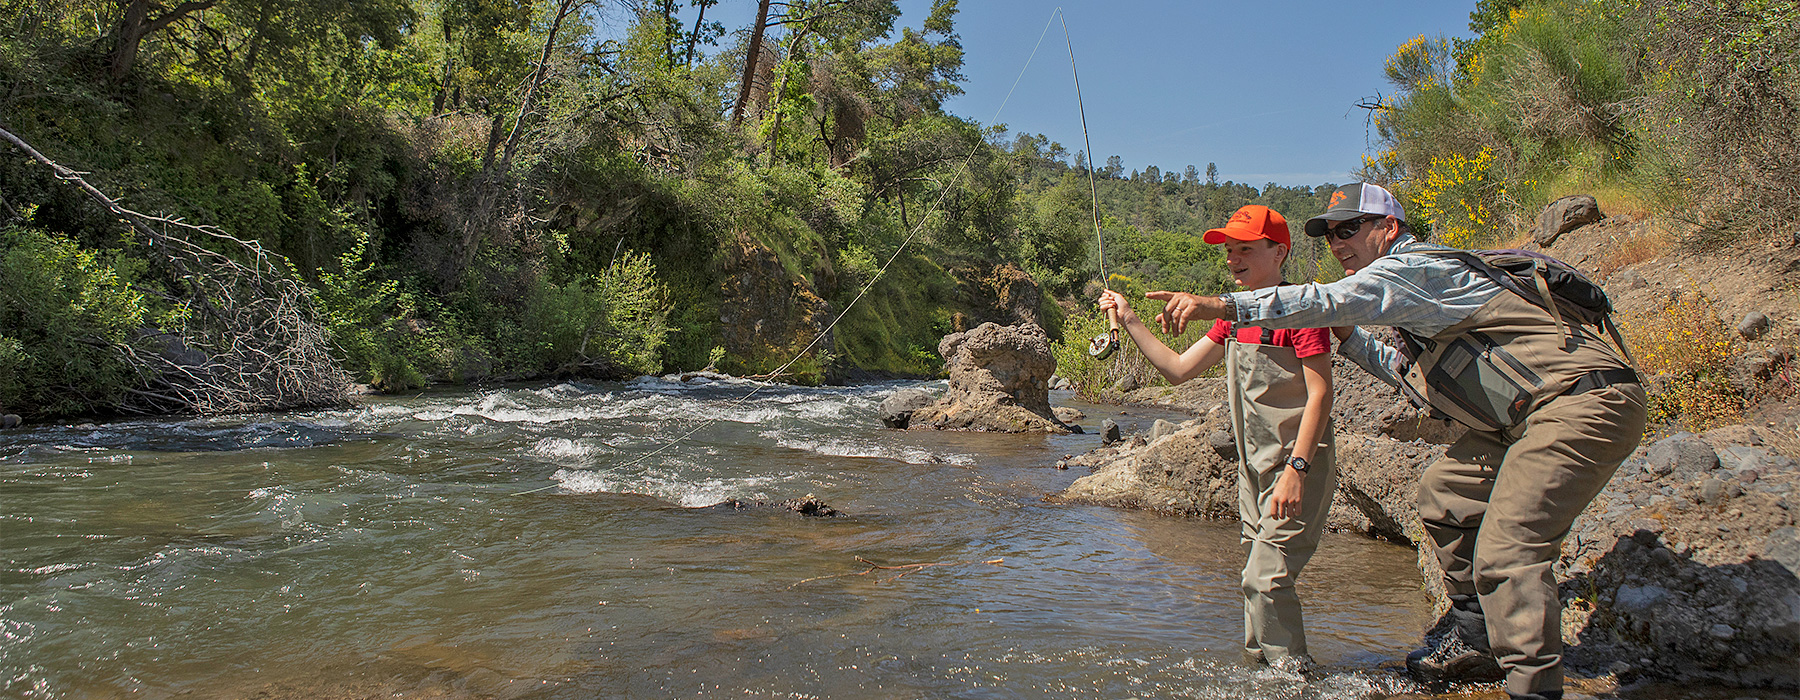 Father's Day Fly Fishing Gift Ideas